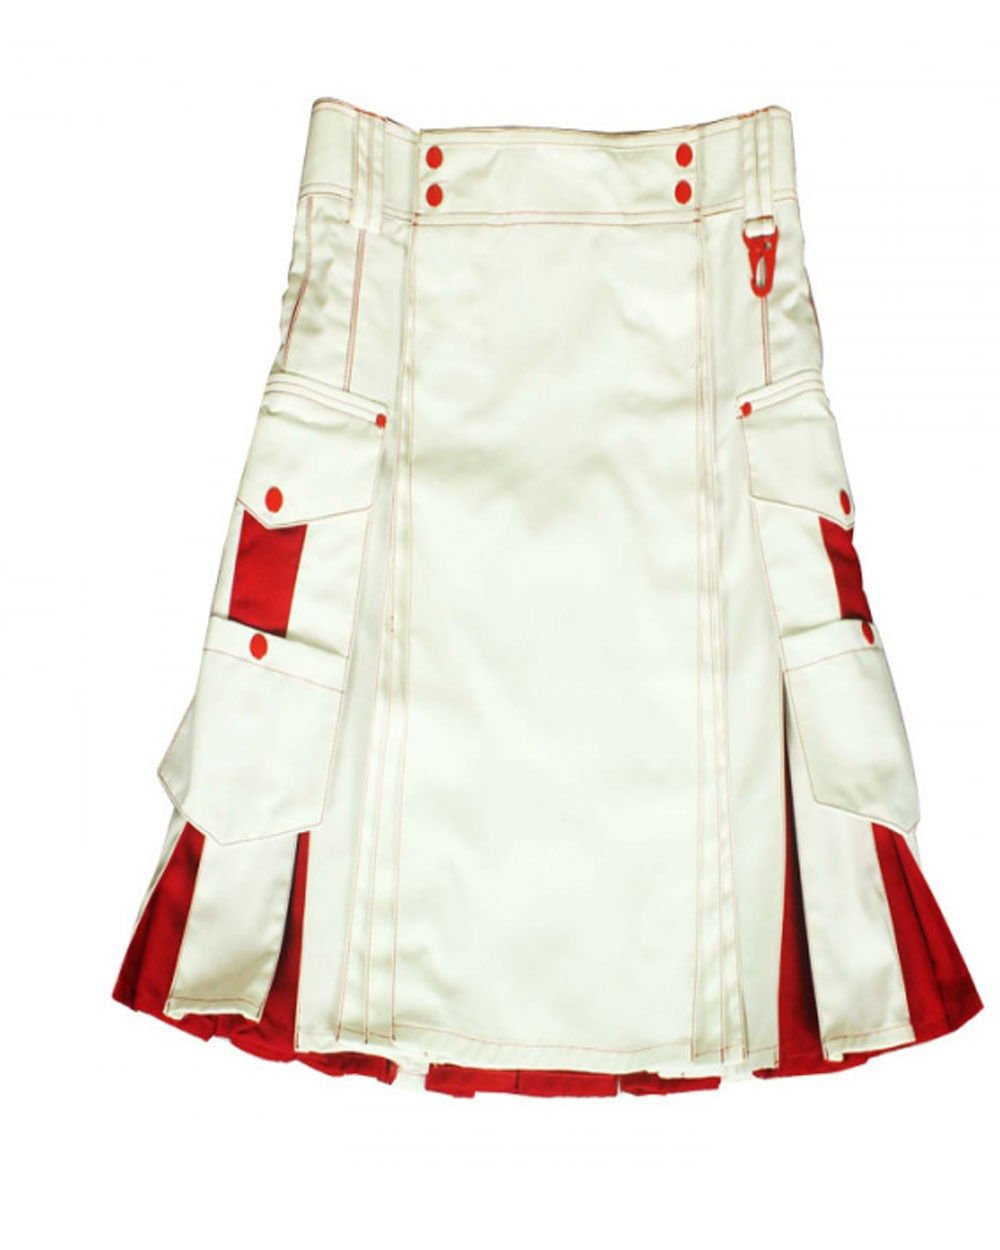 36 Size Handmade White & Red Cotton Kilt for Active Men, Hybrid Cotton Utility Deluxe Kilt